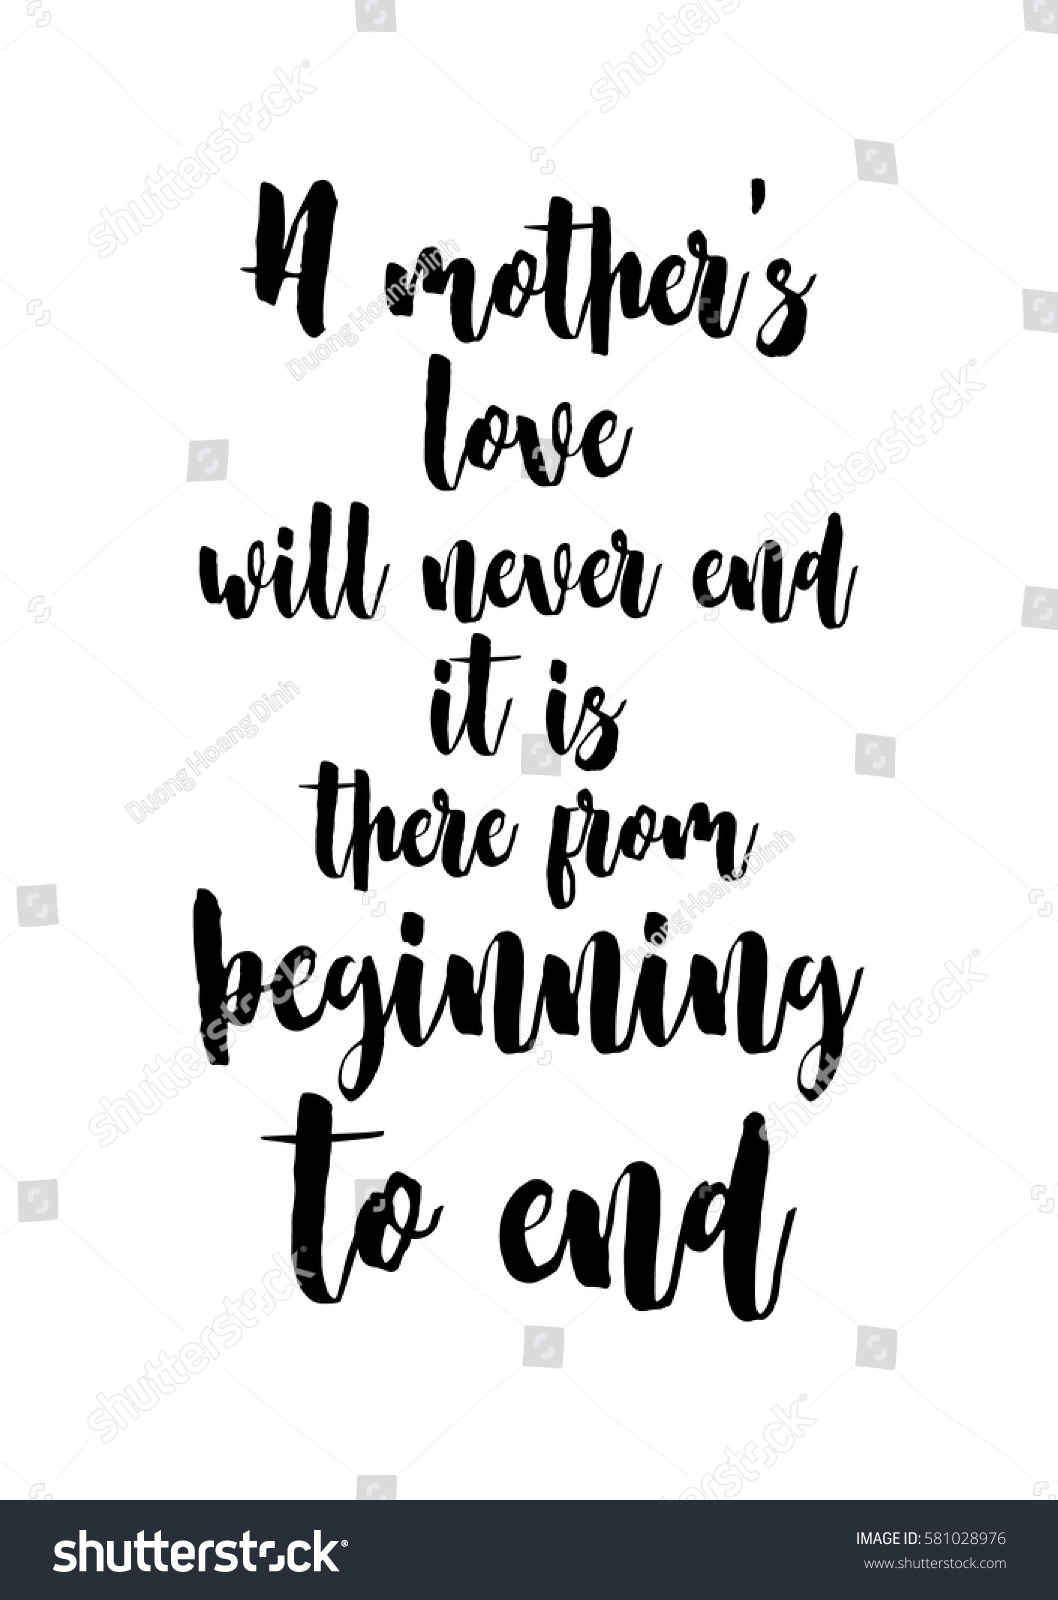 A Mothers Love Quotes Black Calligraphy Inscription Day Quote Day Stock Vector 581028976